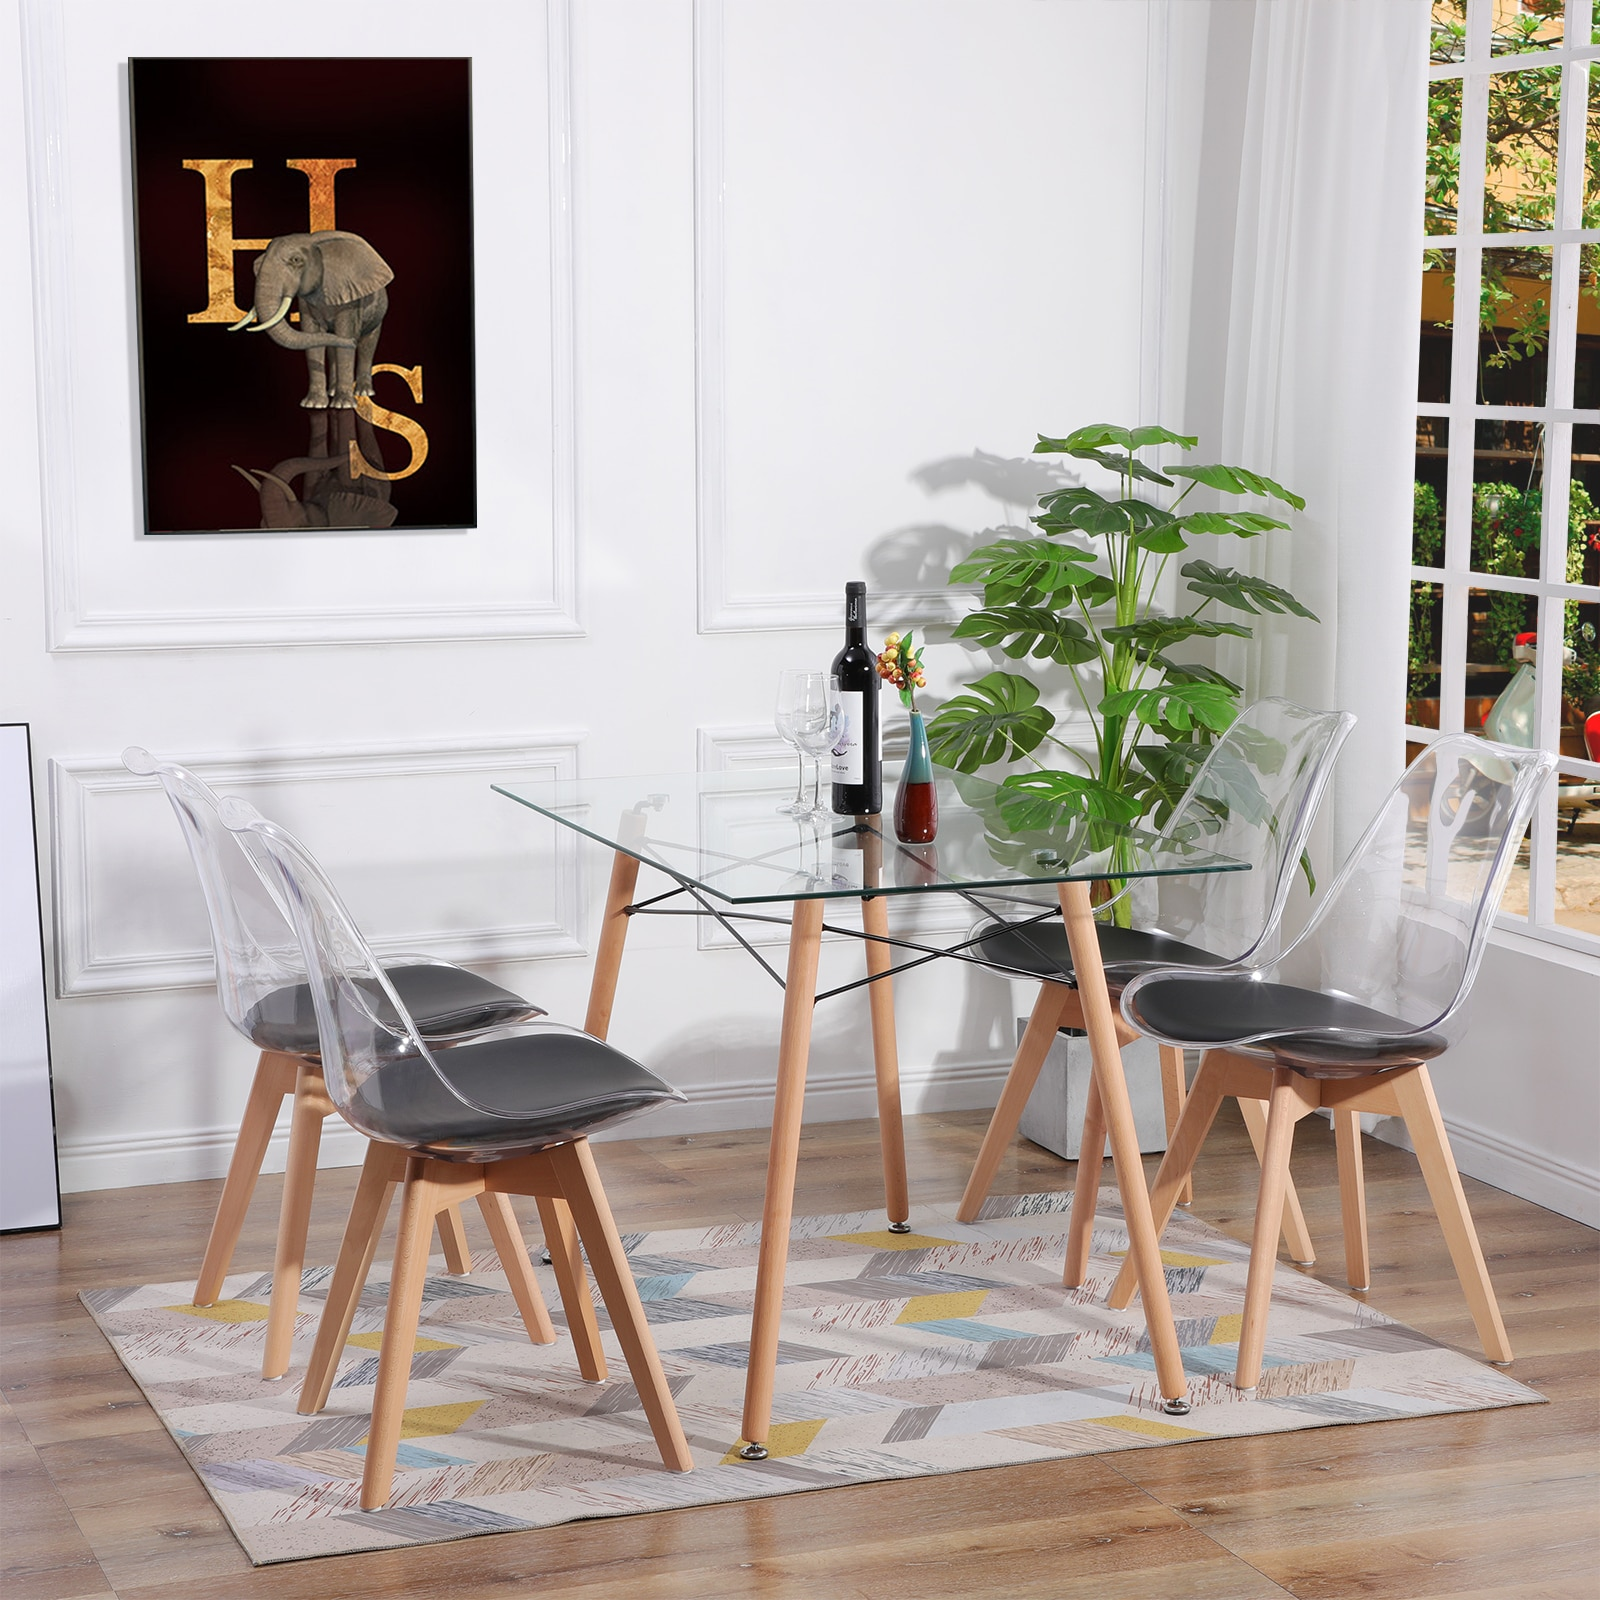 Dining Table Galss Rectangle Modern Scandinavian Legs Solid Wood Grain Finish for Dining Room Kitchen Salon, 110*70*73